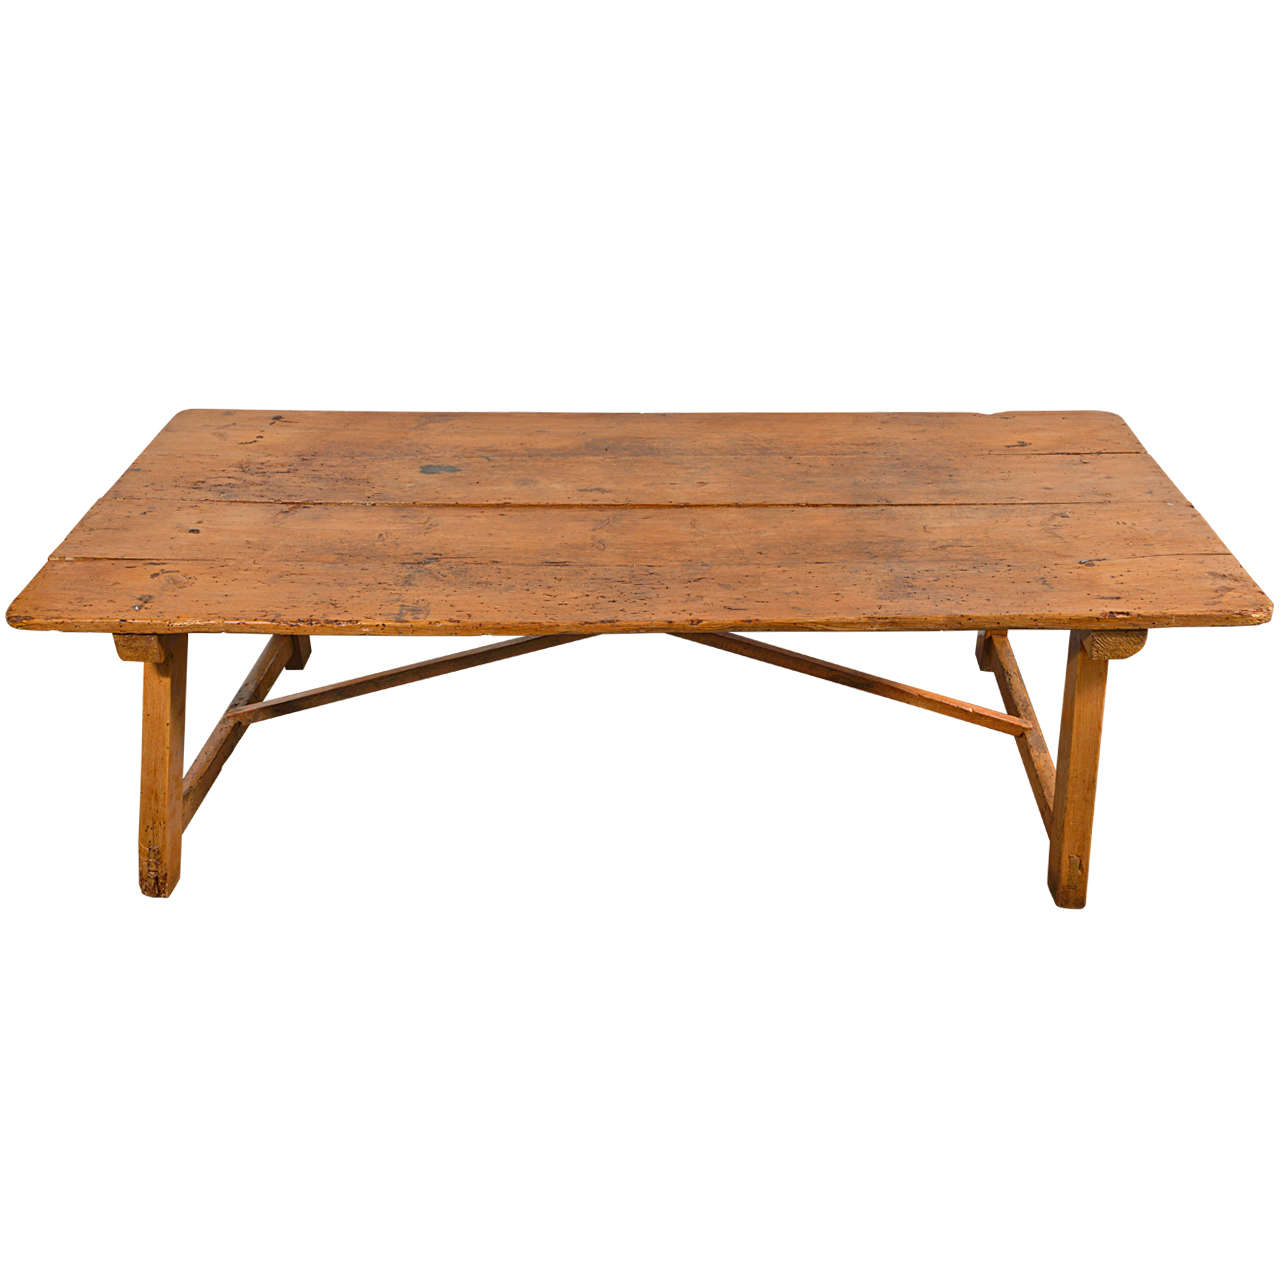 19 Th C Spanish Pine Coffee Table At 1stdibs